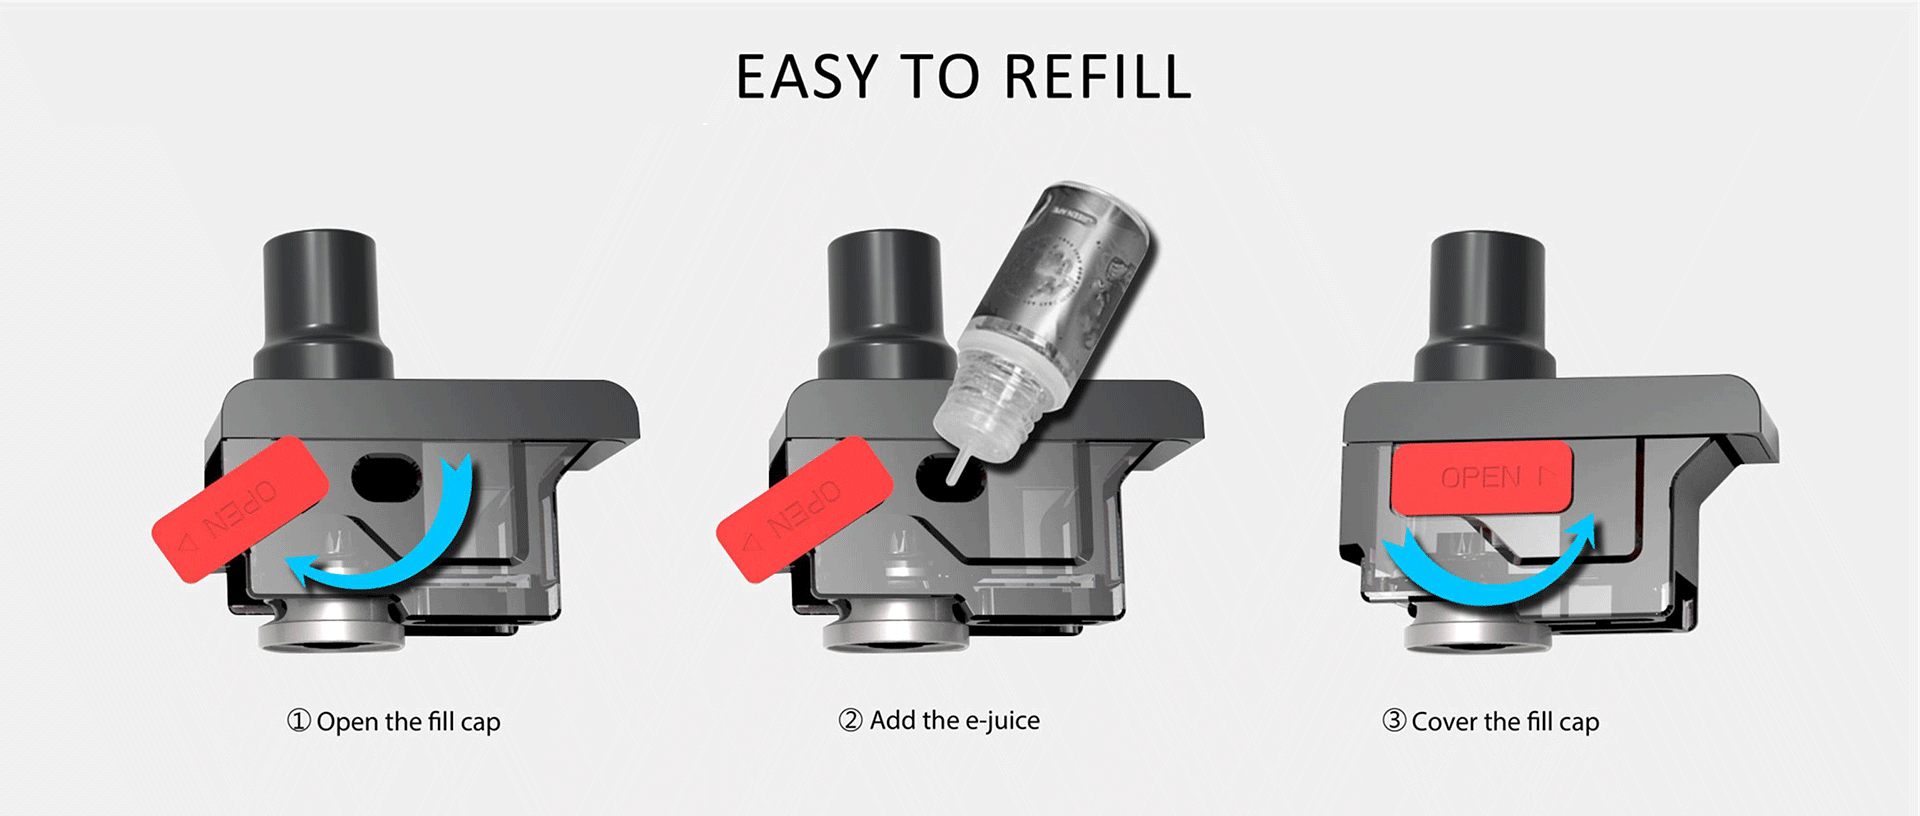 A 3-step instructional illustration about refilling vape replacement pods..